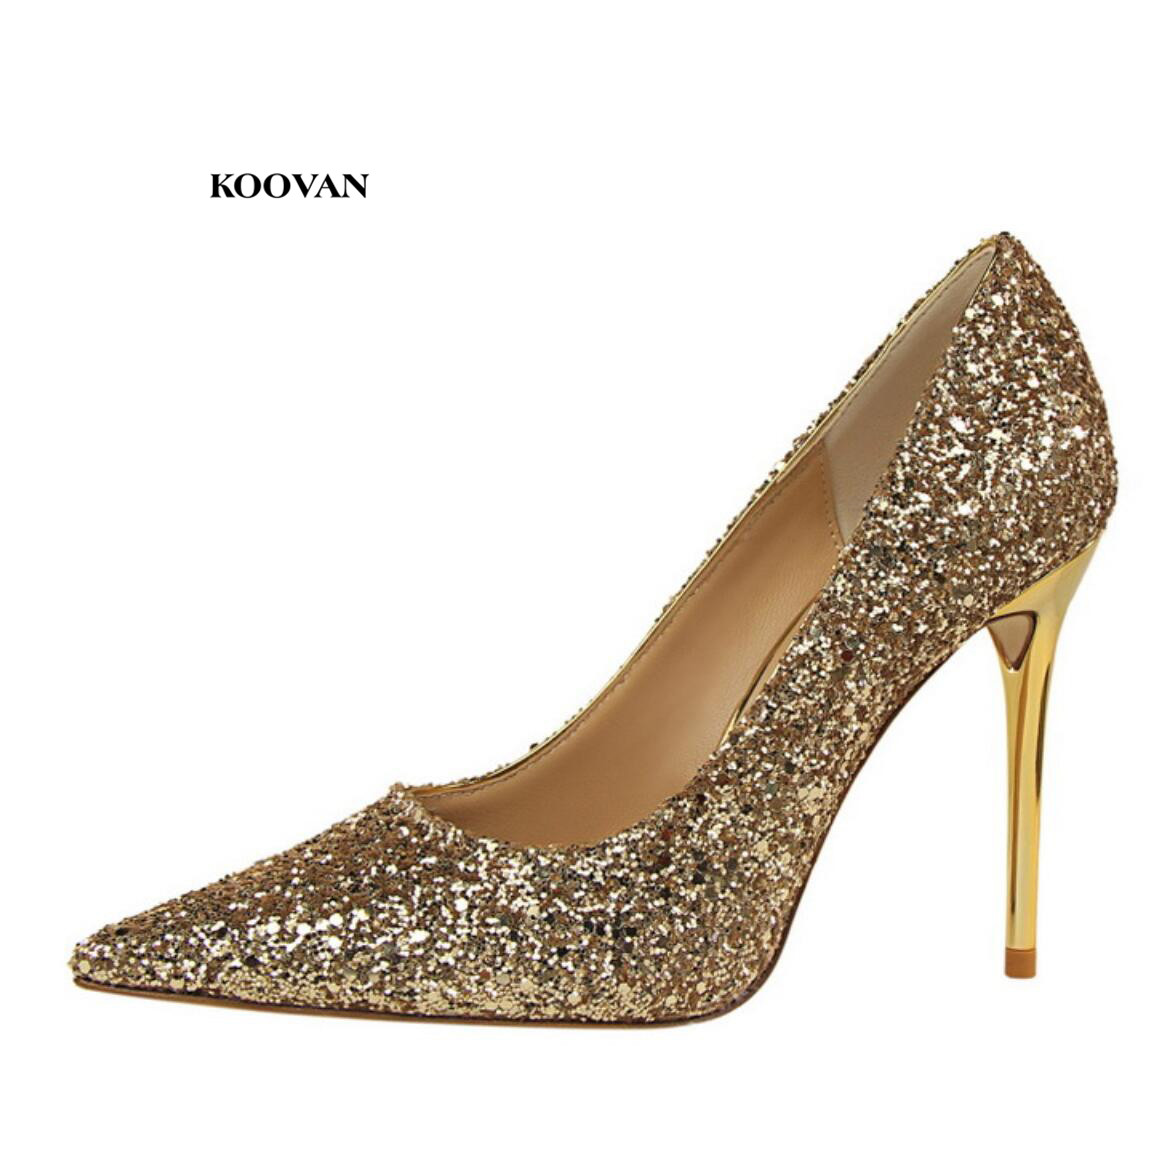 Koovan Womens Pumps 2018 Fashion Style Shoes High-heeled Pointed Shine Sequin Sexy Nightclubs Bling Wedding Shoes for Women